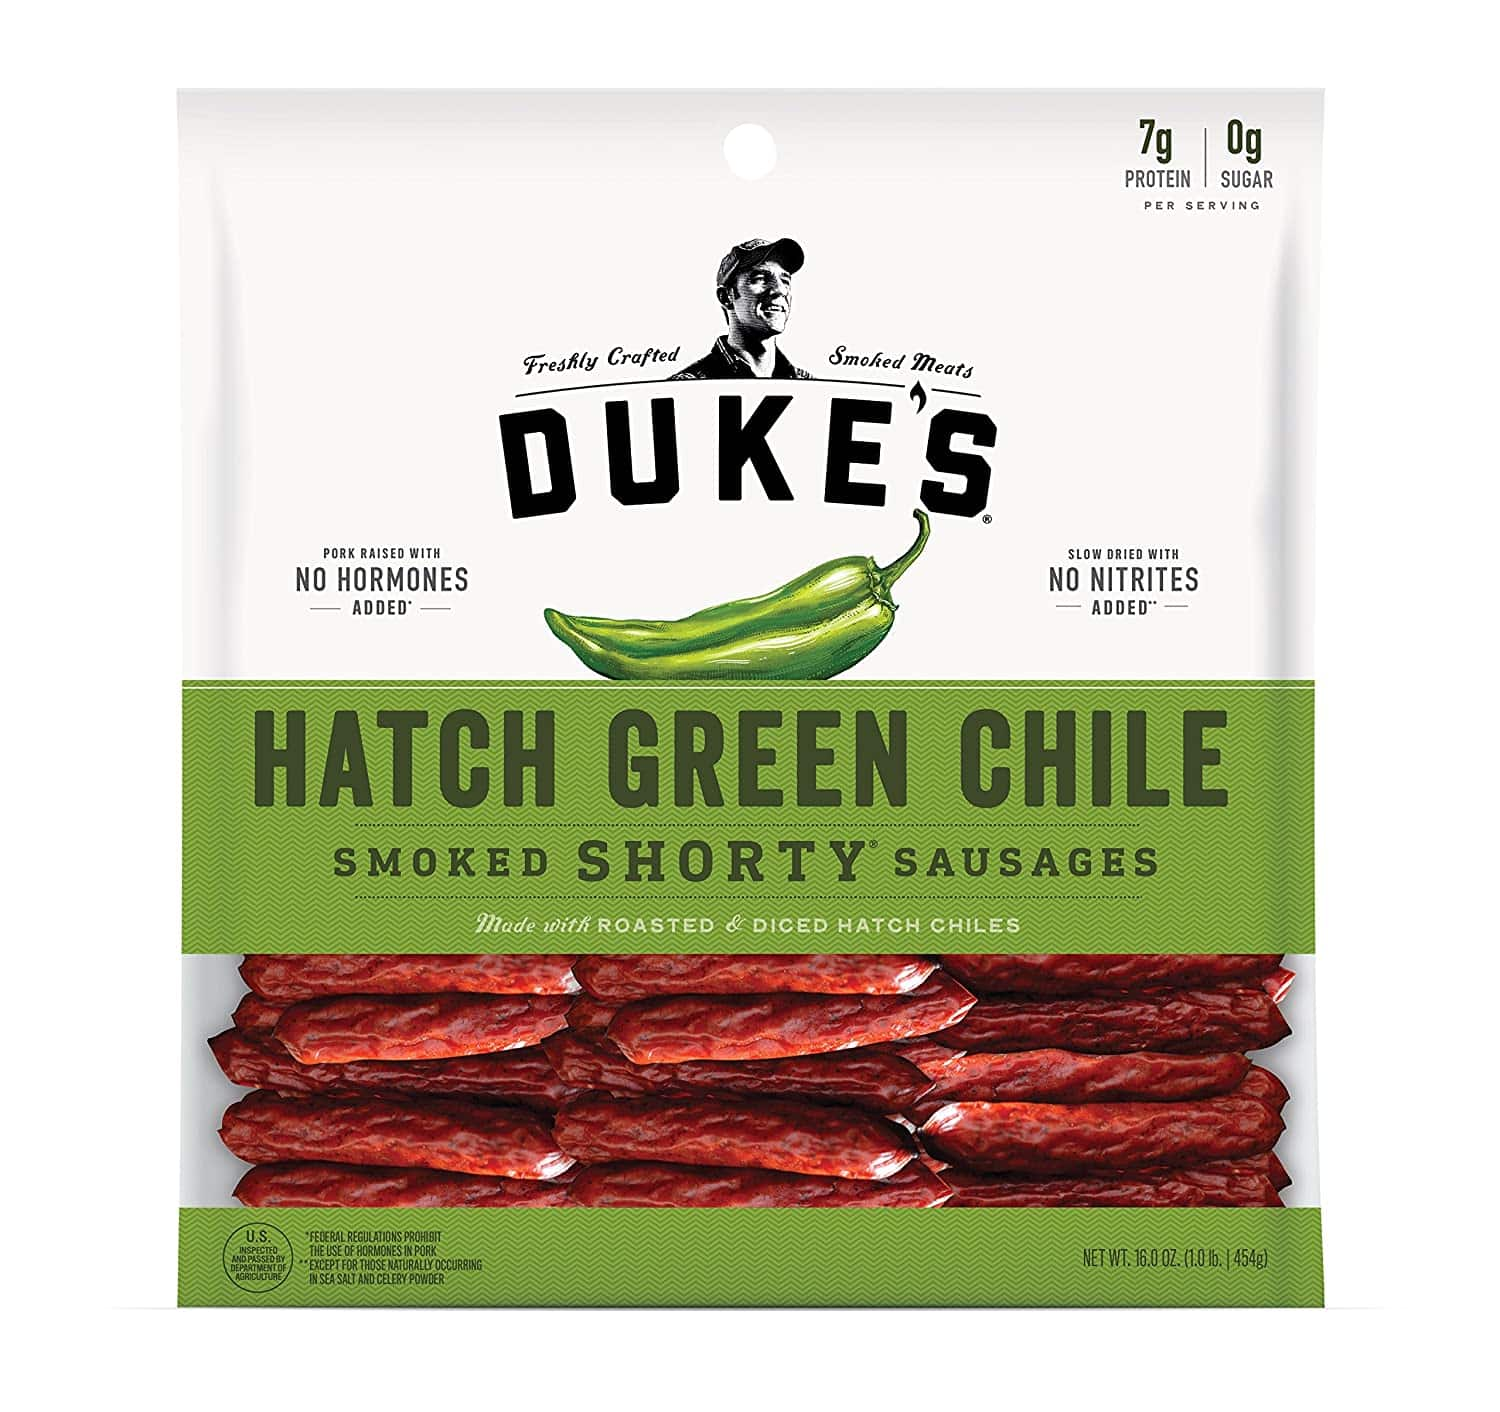 Duke's Smoked Shorty Sausages - Chorizo Lime or Hatch Chile 16 oz. Bag - $8.60 AC and 15% Subscribe & Save Discount @ Amazon